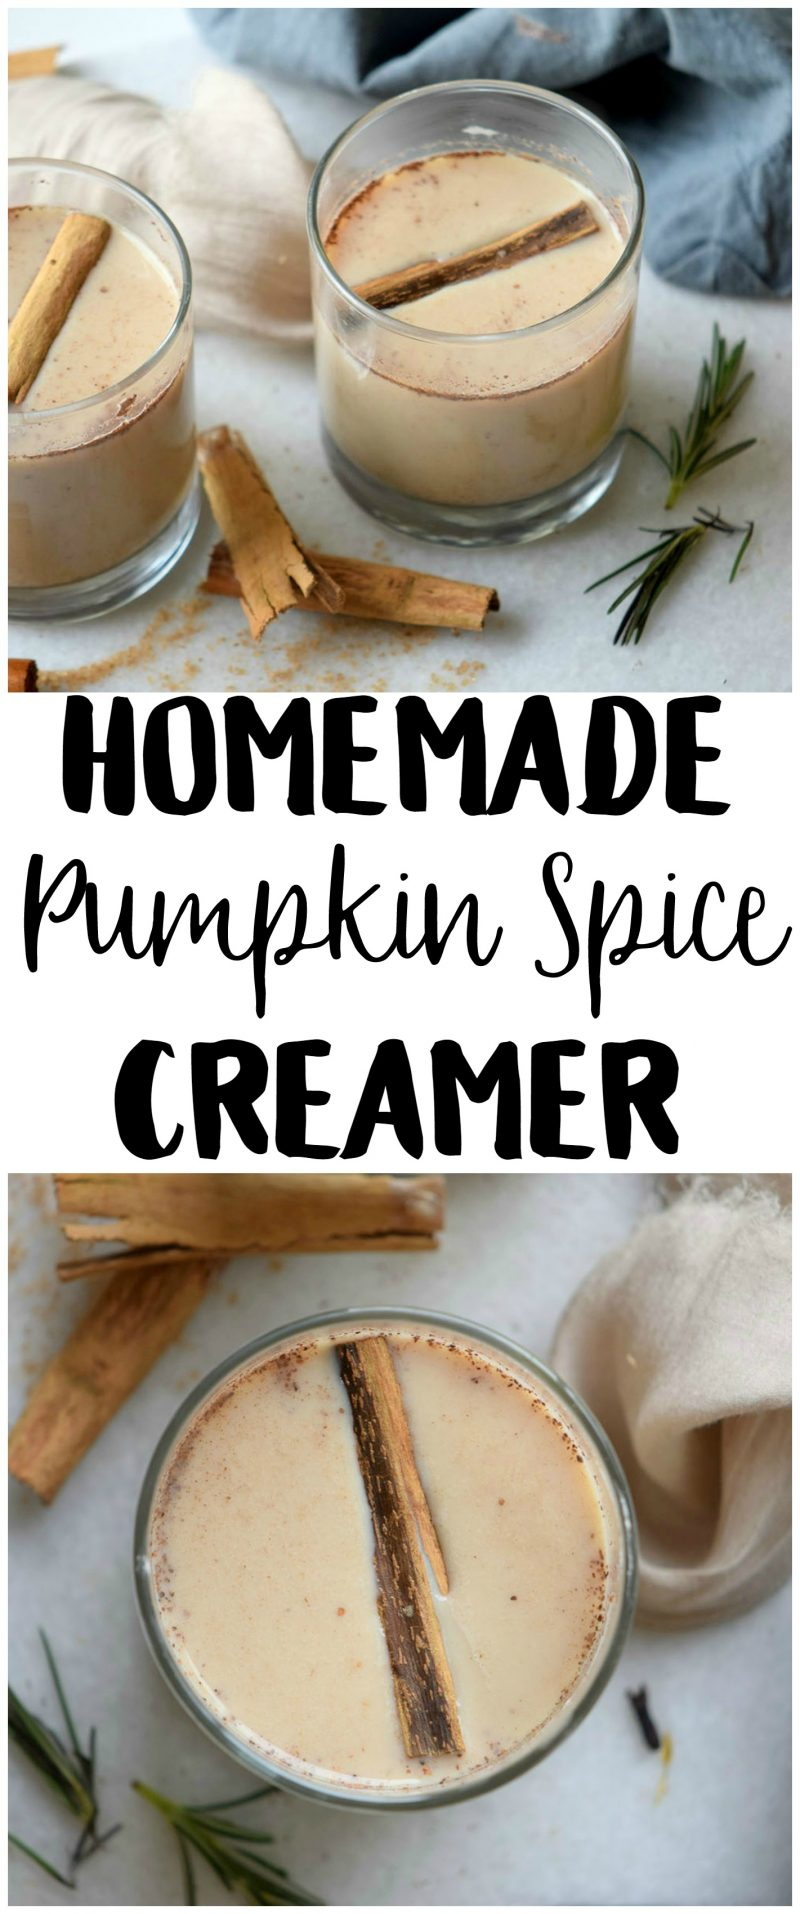 If pumpkin spice lattes are the highlight of your fall {same}, you have to try this easy DIY homemade coffee creamer recipe! It's cheaper and faster than hitting the drive through for a PSL all the time and tastes SO good.